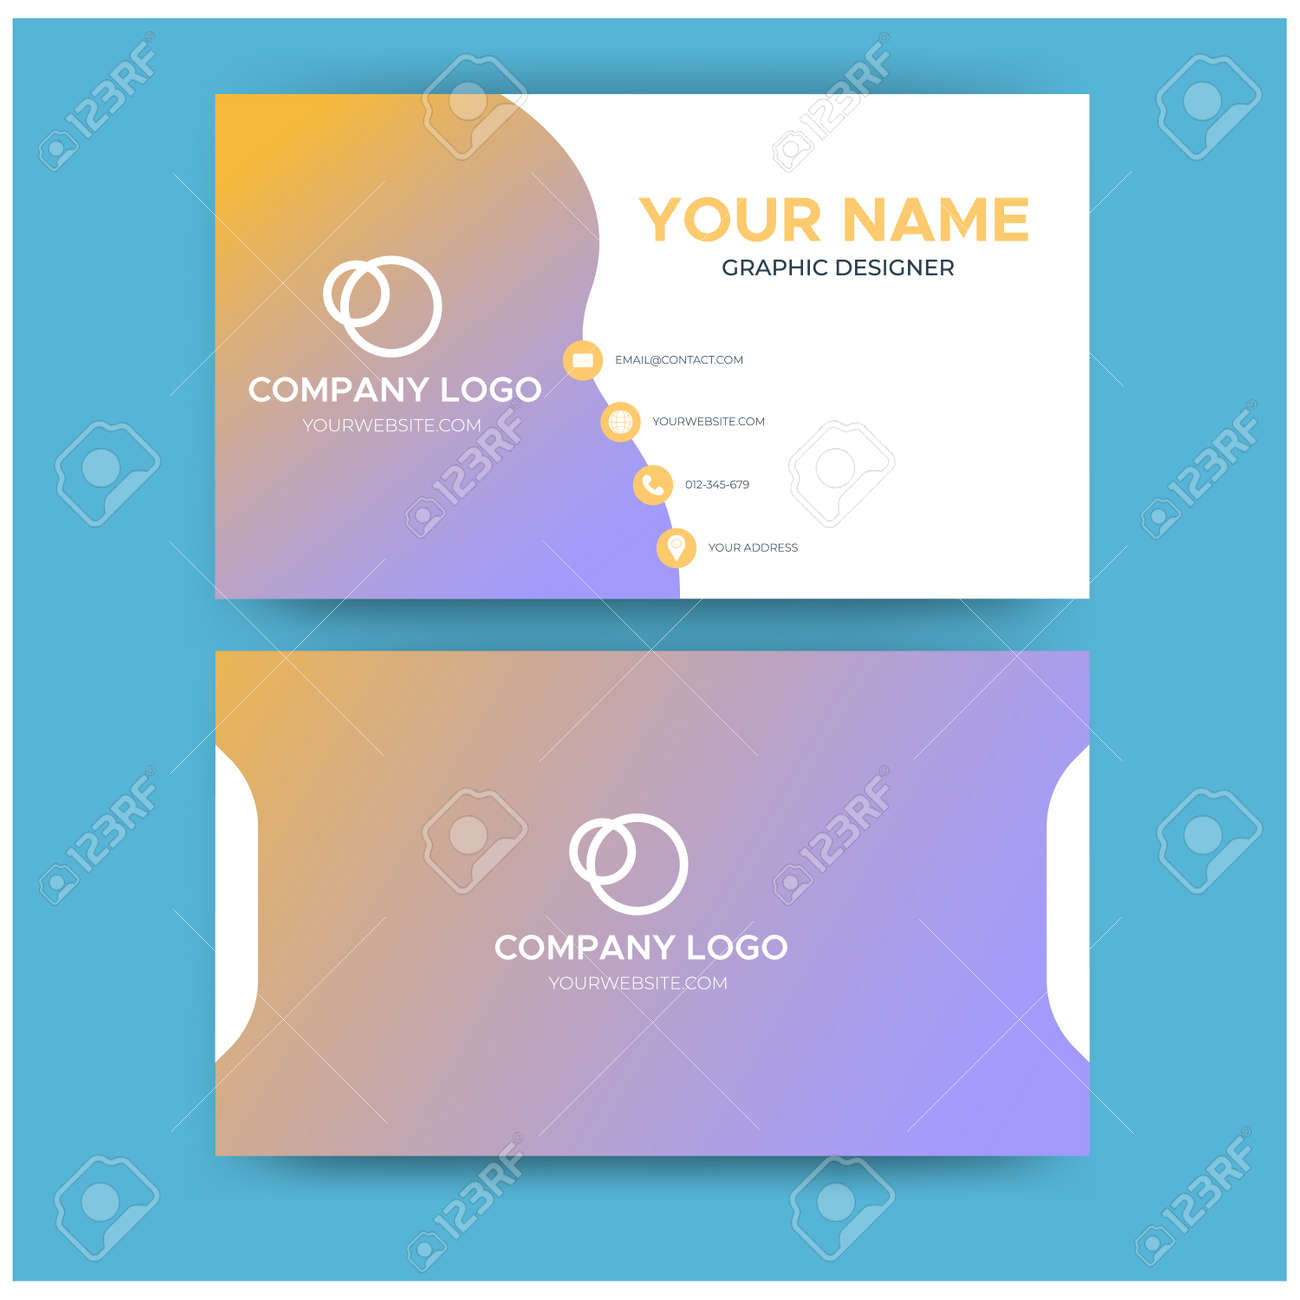 Minimalist Business Card Template from previews.123rf.com